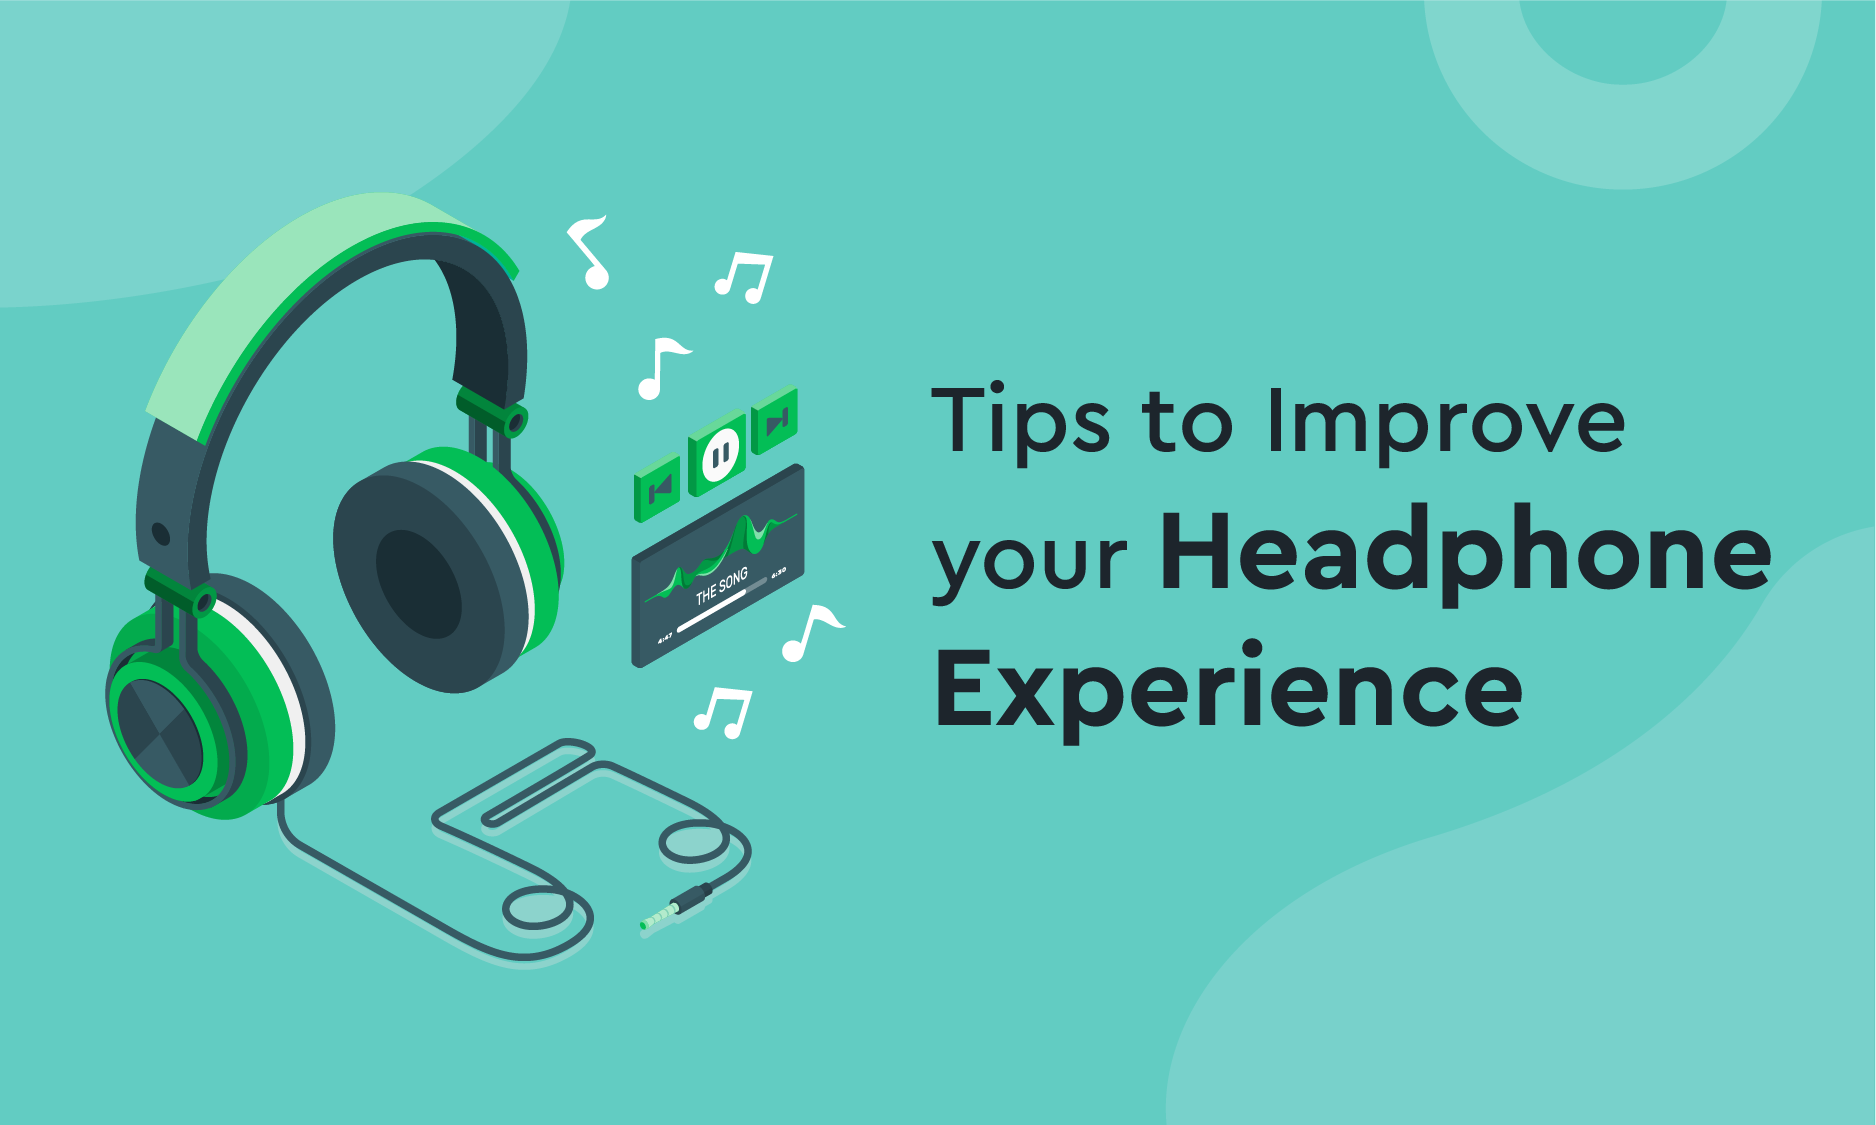 Tips to Improve your Headphone Experience